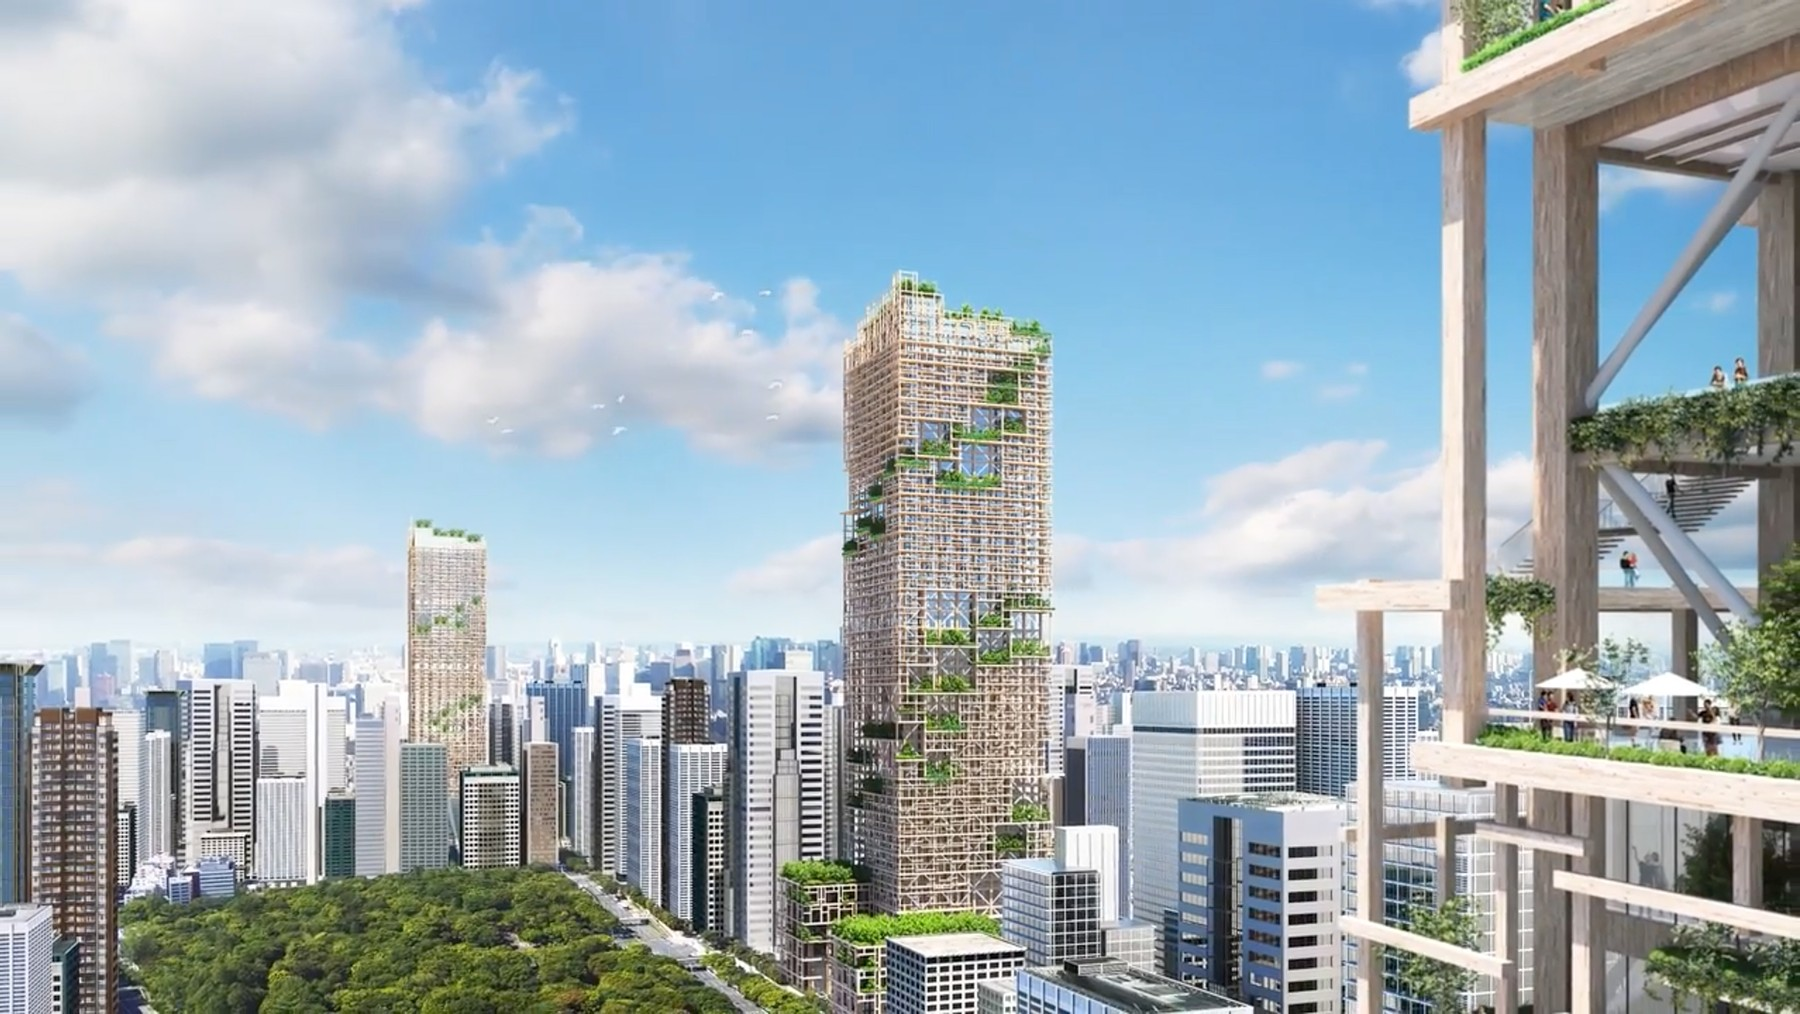 """Ferrari Press Agency                                                                      Ref 8930  Wooden 1  15/02/2017 See Ferrari text Picture MUST credit : Sumitomo Forestry Co  A skyscraper made of WOOD is to be built in Japan.When completed, it will be the world's tallest wooden building at a tower 350 metres / 1,148 feet .Although the cost of building will be double the construction of a conventional tower, the long term benefits will make it cheaper to run and recoup money.When maintenance is required, old wood can be taken away and recycle.Timber and forest management Sumitomo Forestry part of one of Japan's largest business conglomerate, plans to complete the W350 Project in 2041 to mark its 350th anniversary.The ultimate aim, the company said, is to create an environment-friendly city of high-rise buildings made of wood that also helps to """"transform the town into a forest"""".The completed tower will house shops, offices, a hotel and residential units, while the designers' sketches show broad balconies covered with greenery, a garden roof, soaring internal open spaces and water features.When completed, the W350 Project will be both  the tallest building in Japan and tallest wooden structure in the world.The record for the tallest primarily wood en building in the world is presently held by Brock Commons Tallwood House, a 53 metre/ 174-foot-high student accommodation at the University of British Columbia in Vancouver.Japanese regulations have previously made it difficult for designers to use wood in residential or commercial-use properties.The concept for the building has been drawn up by Sumitomo's Tsukuba Research Laboratory, which has devised a plan for a skyscraper with 70 stories above ground and made of a combination of wood and steel, with wood accounting for 90 percent of the construction material.The tower will require more than 184,000 cubic metres /  6.5 million cubic feet of wood.The cost of the project has been estimated at Y600 billion Yen / £4."""